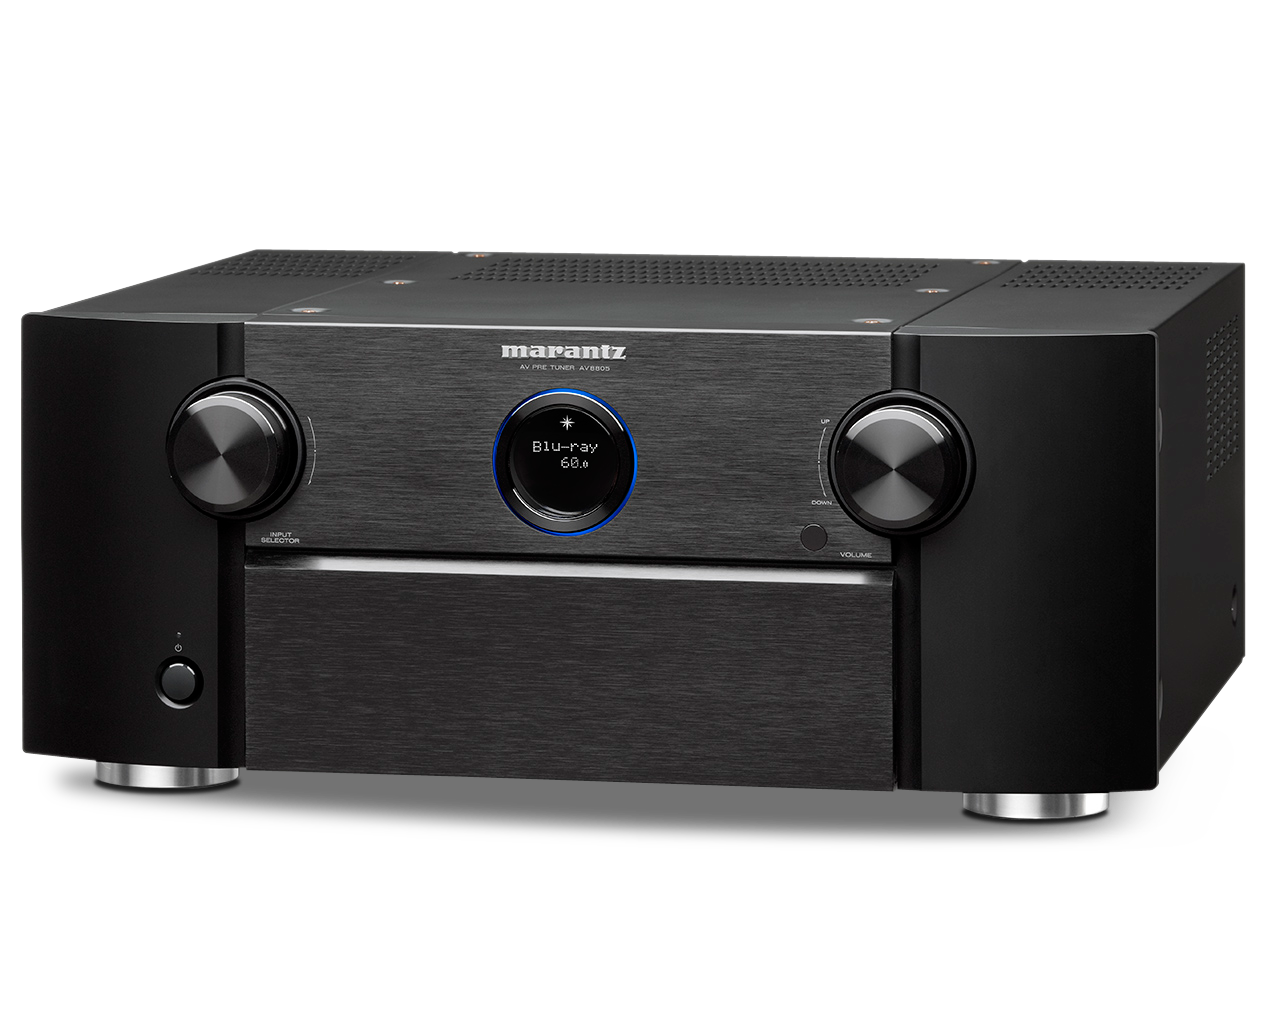 AV8805 Full 4K Ultra HD Network A/V Preamplifier